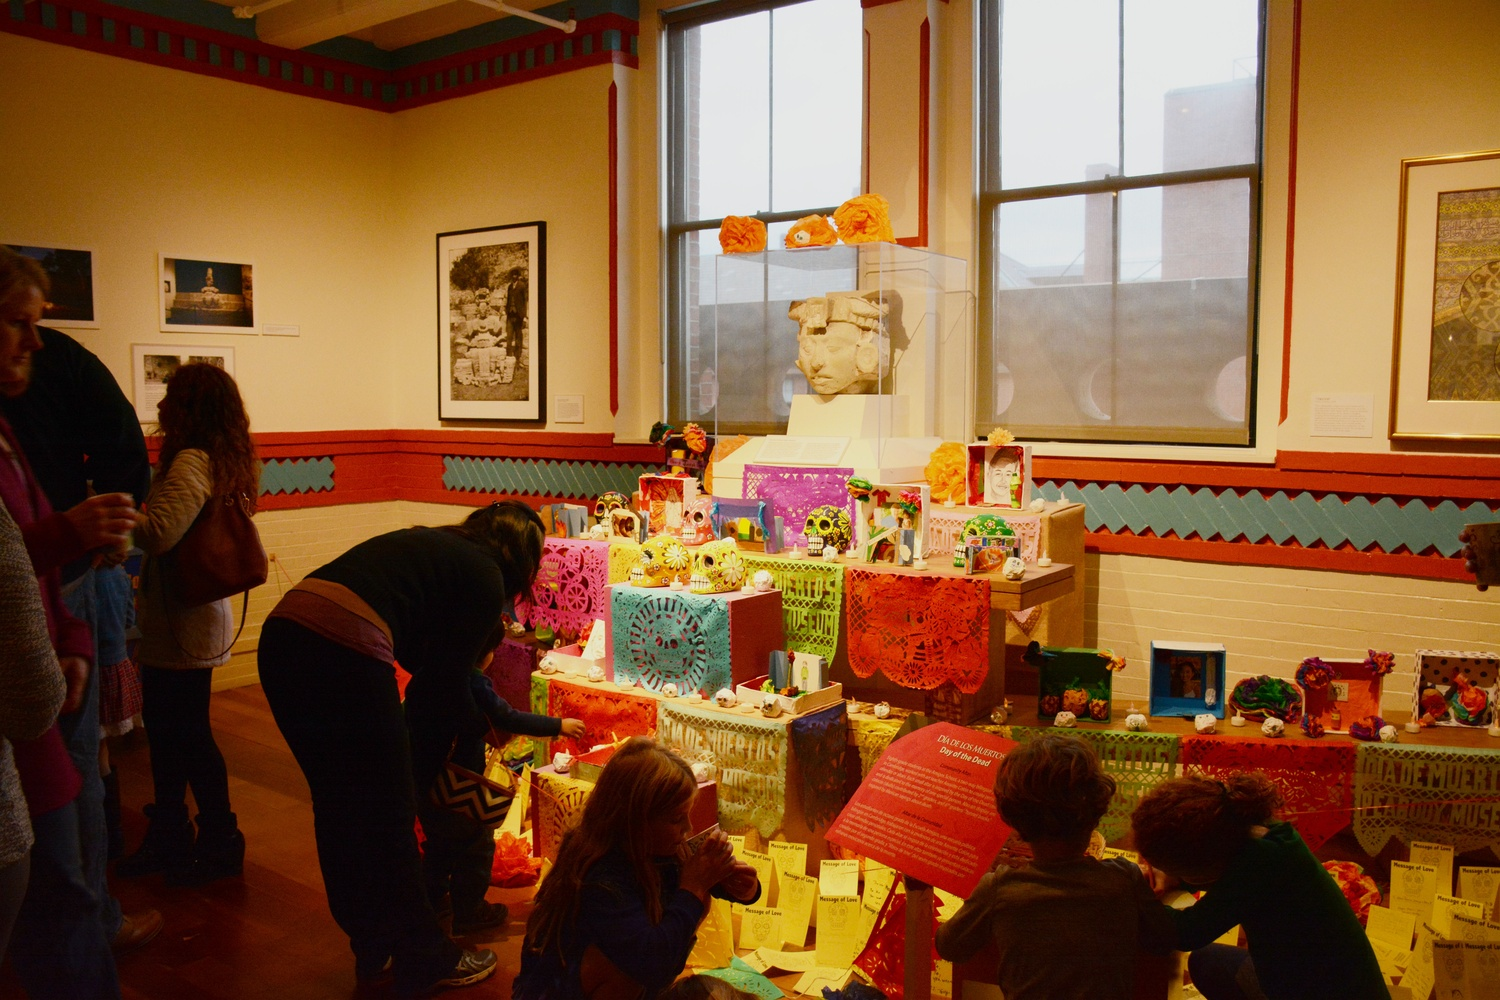 Peabody Museum visitors examine a table full of objects associated with the Day of the Dead.  This setup is part of the Peabody Museum's celebration of the Day of the Dead for local families.